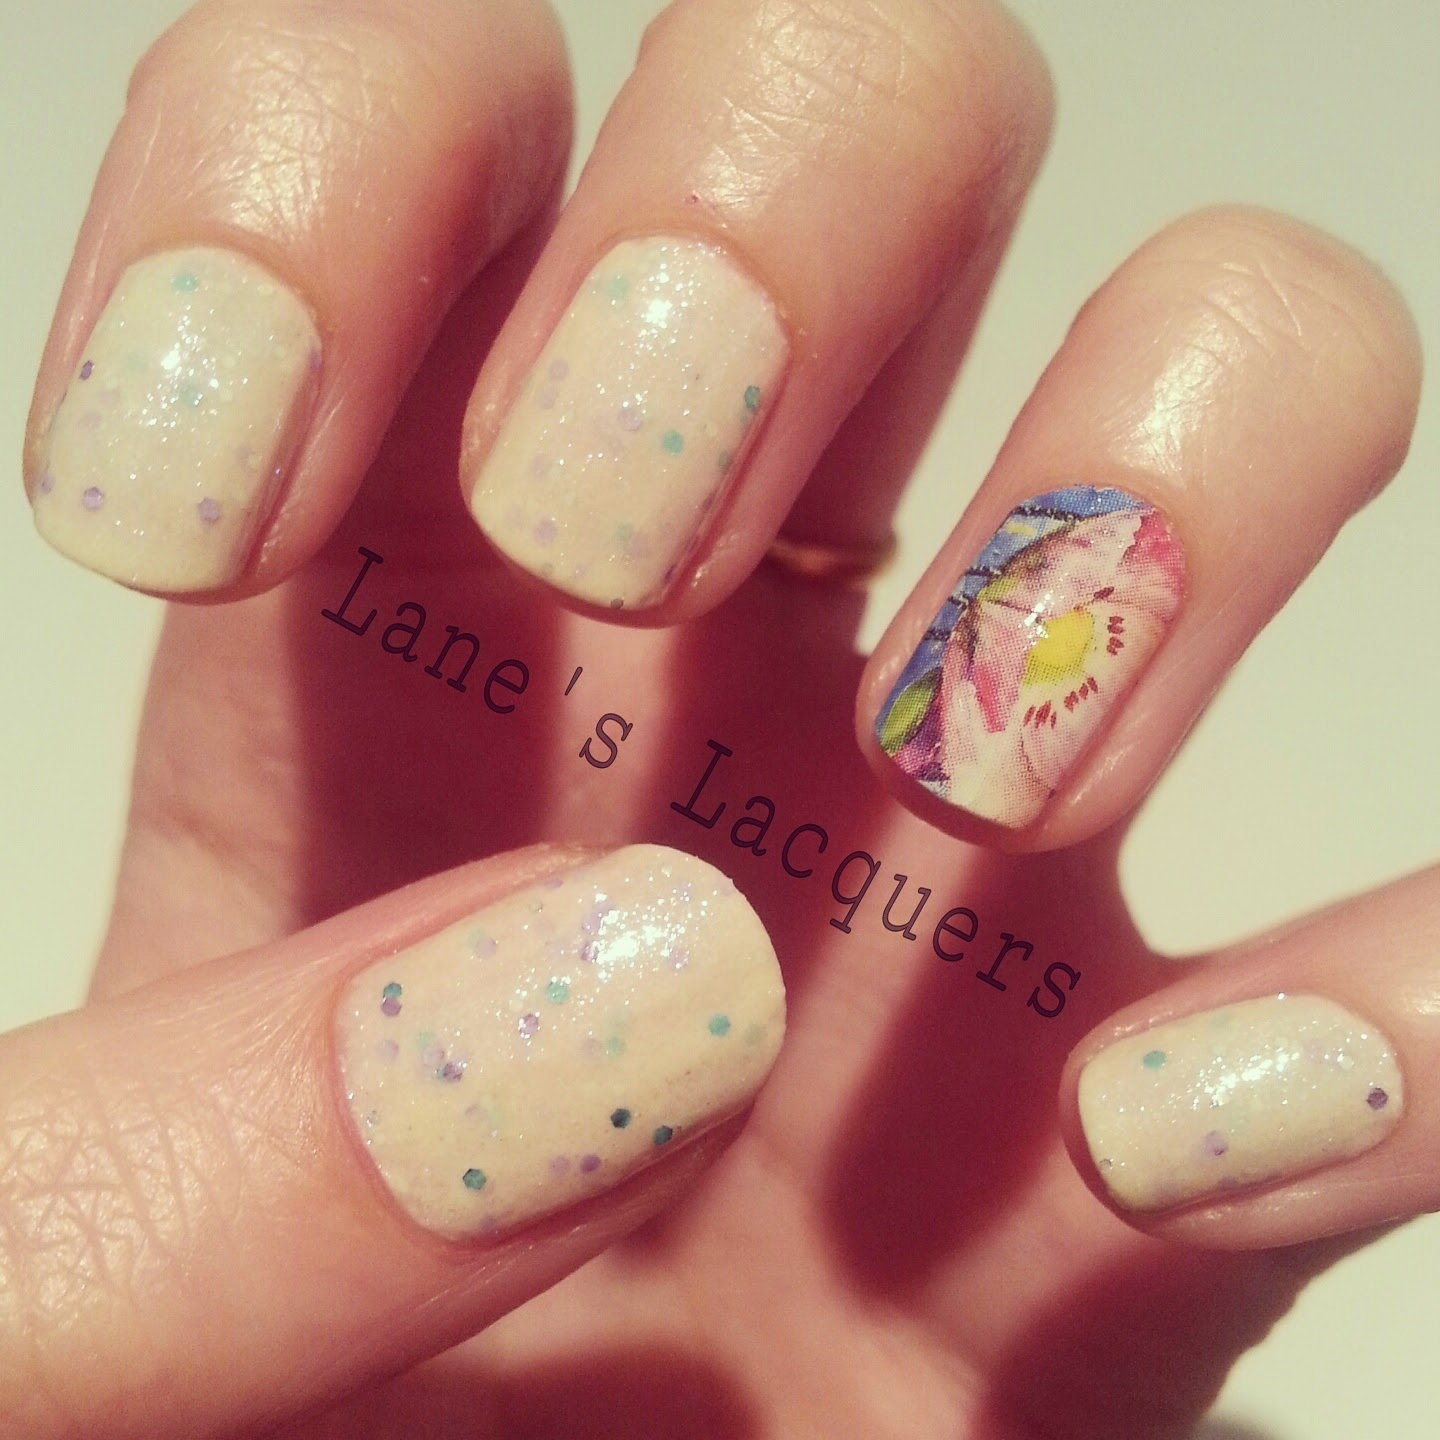 picture-polish-never-nude-swatch-nails-born-pretty-floral-water-transfer-art